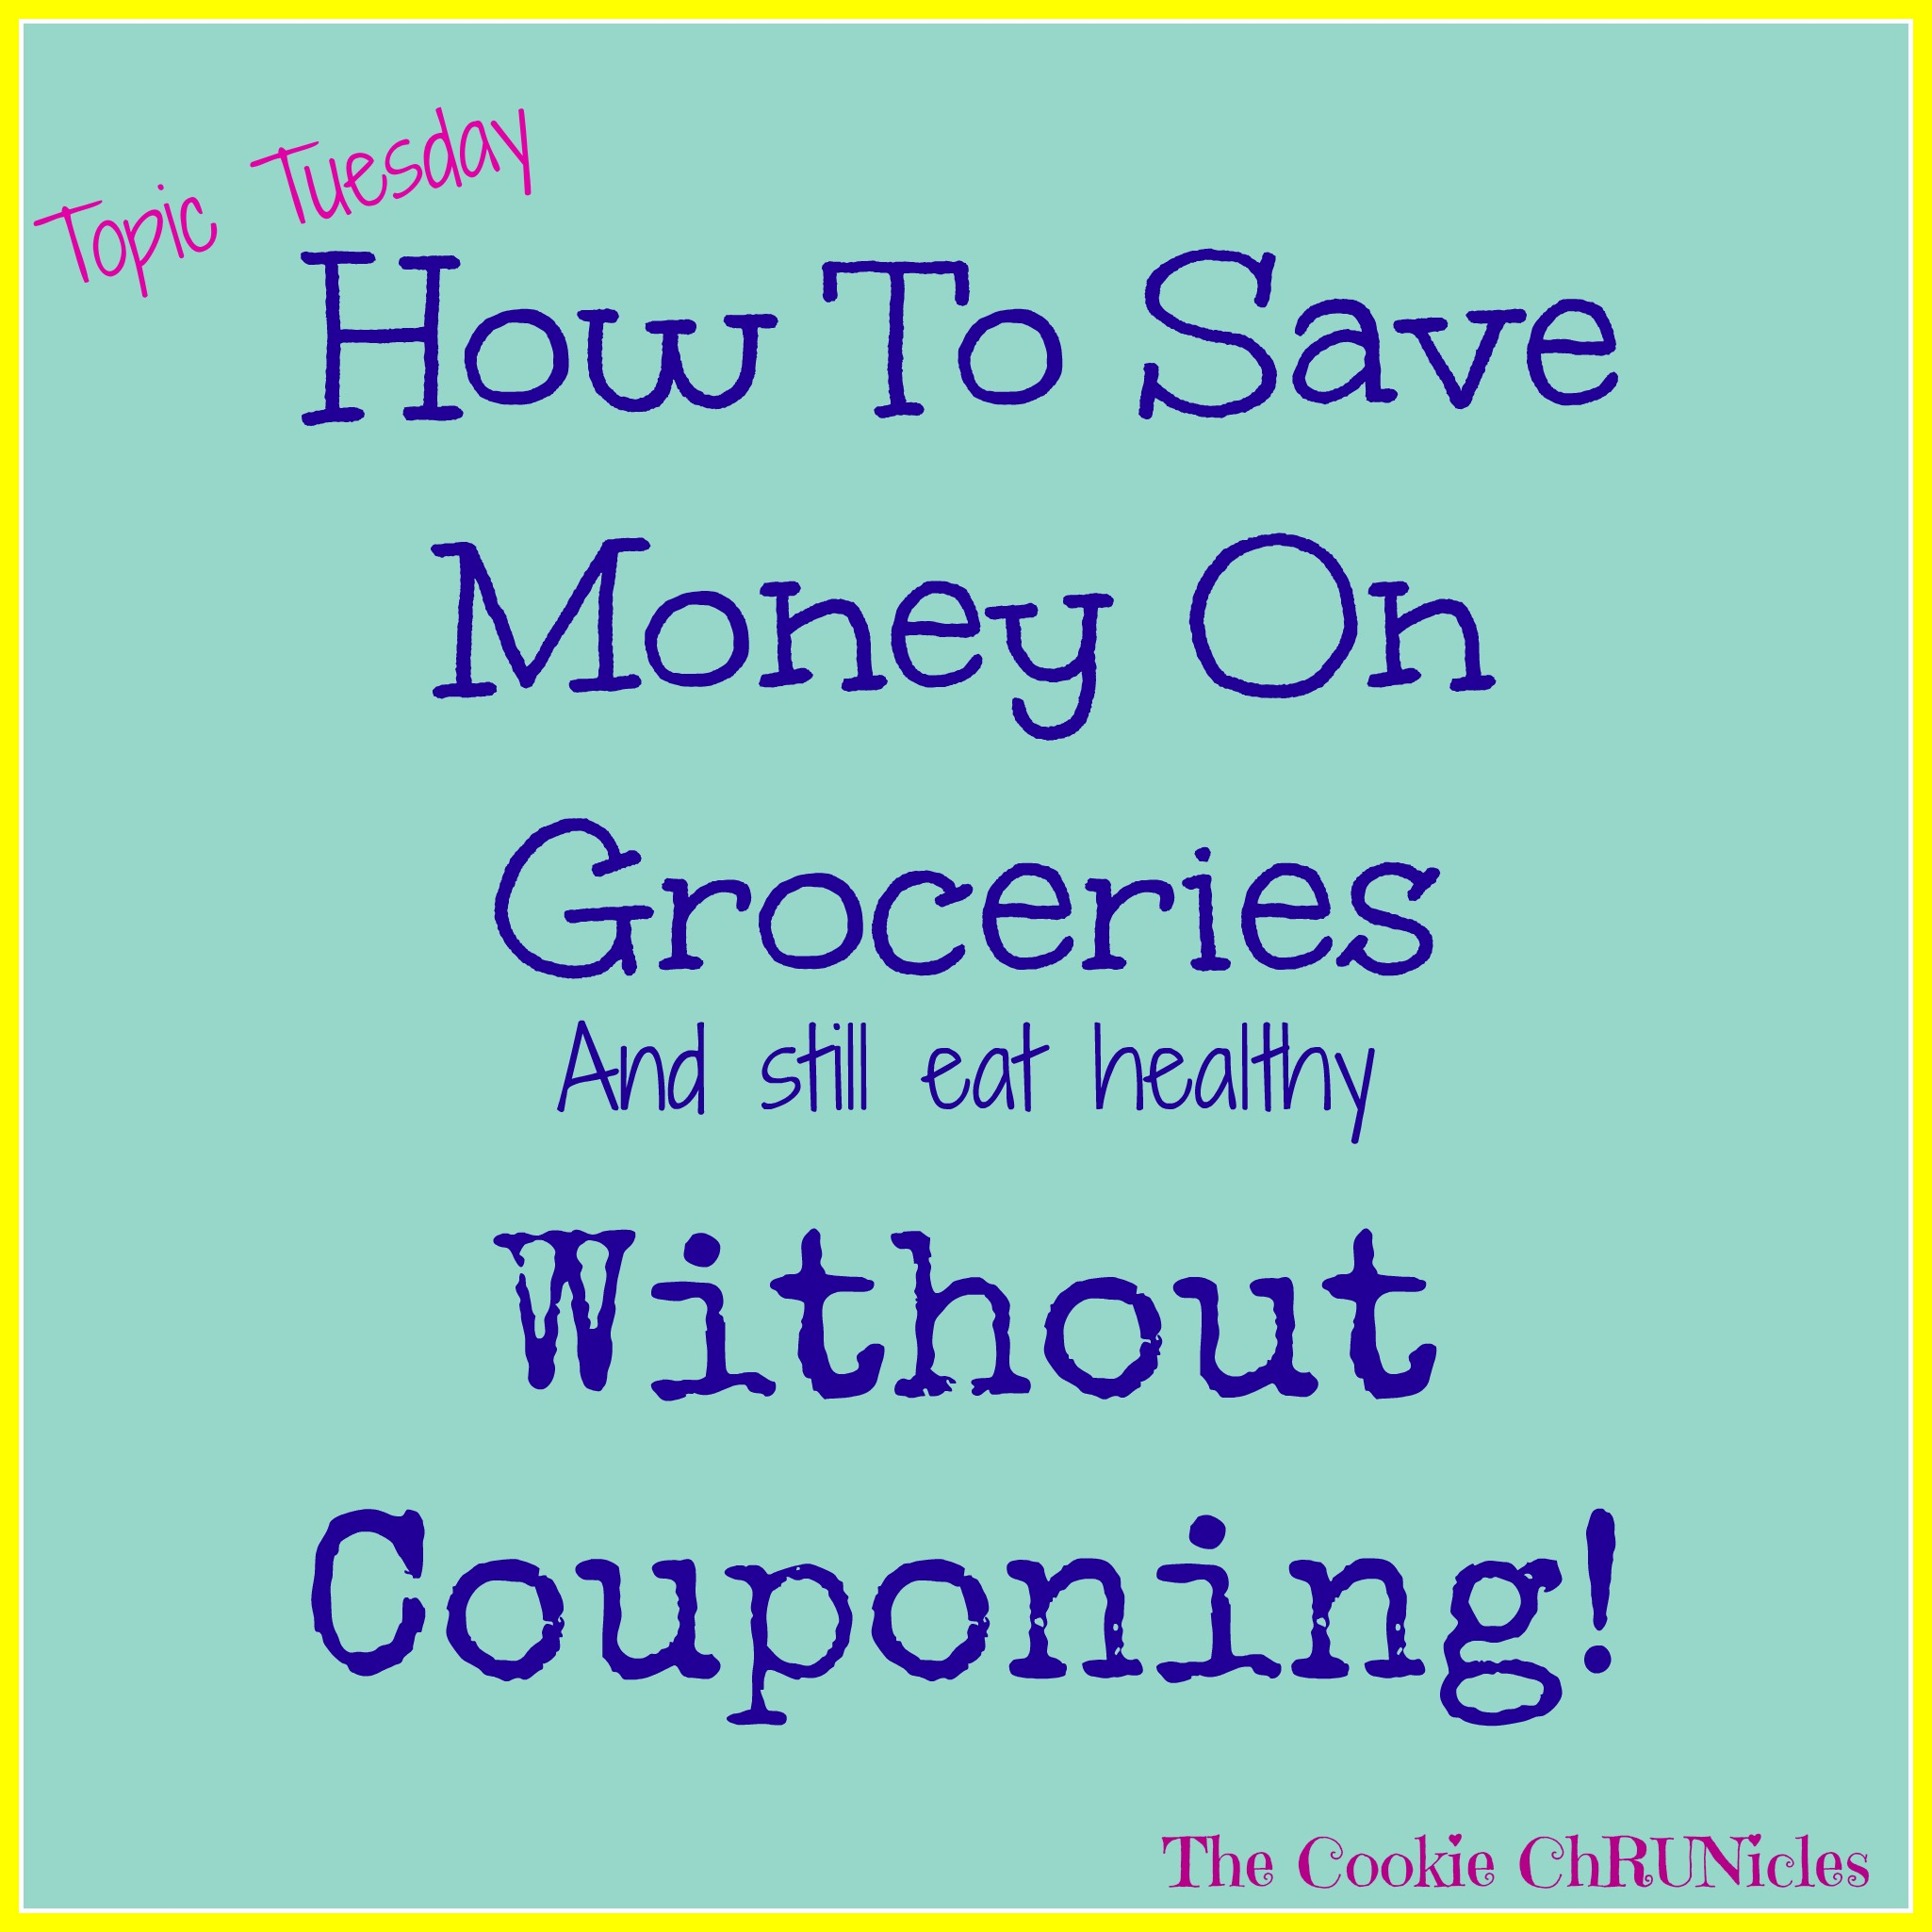 How To Save Money Grocery Shopping Without Coupons